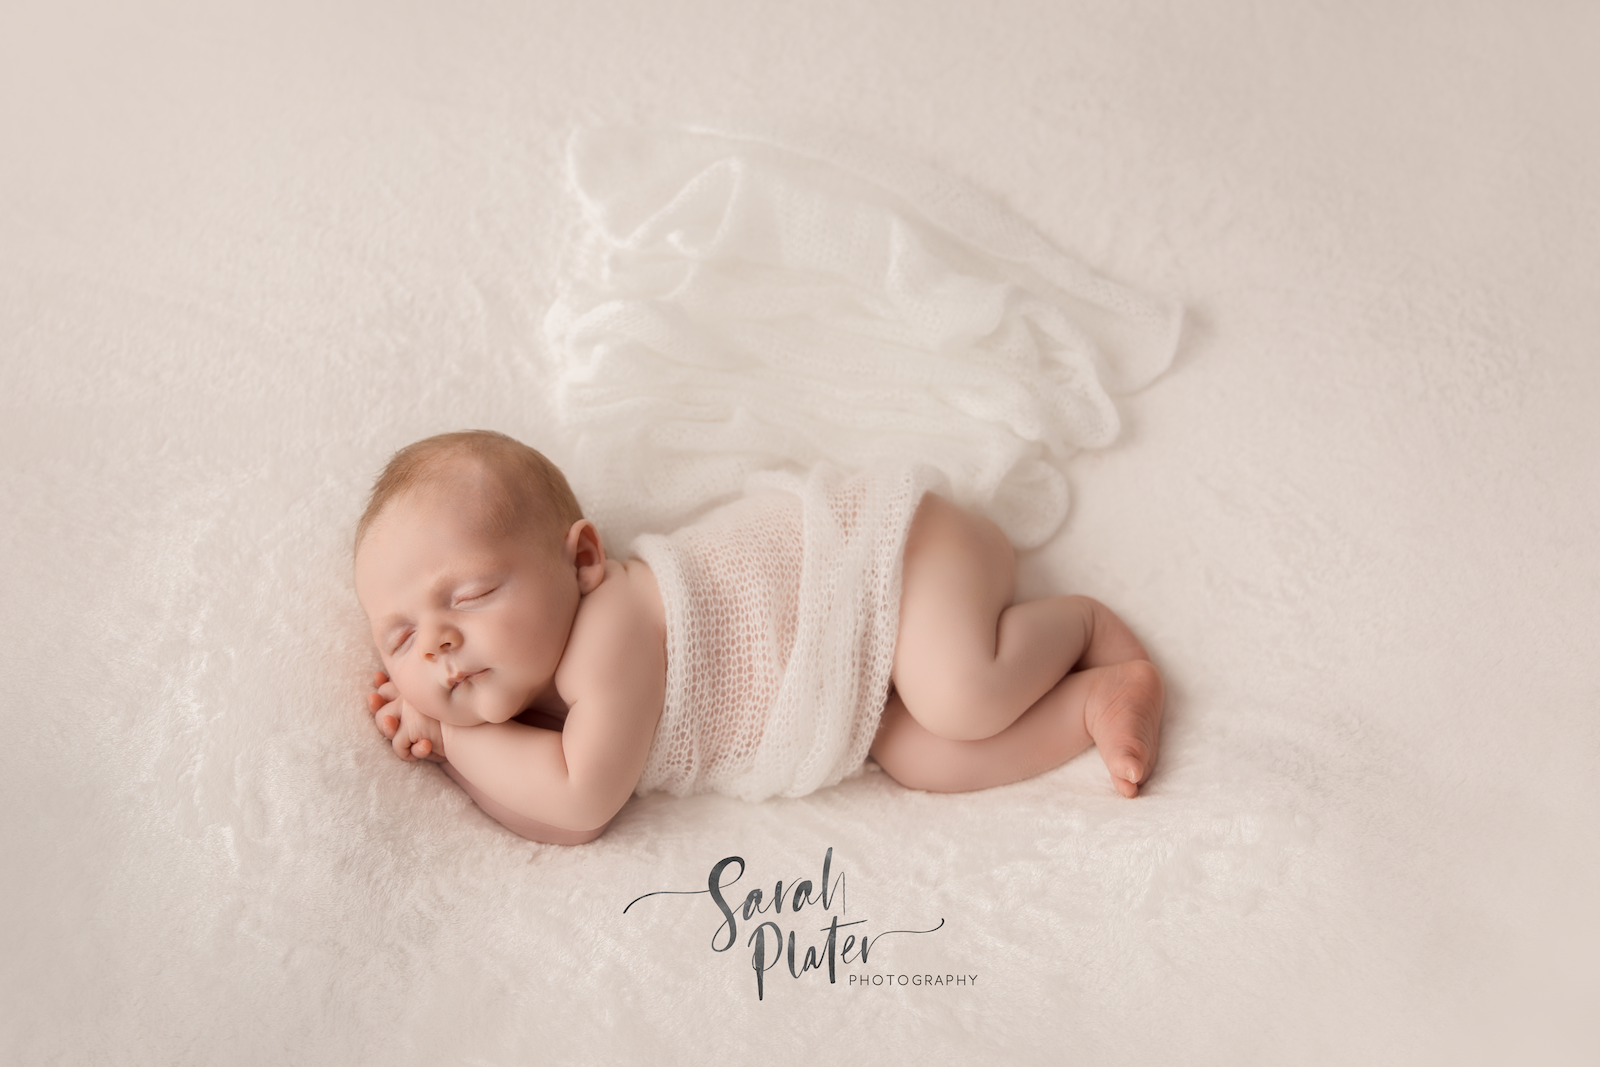 Bicester based mum rebekah was interested in some newborn photography of her second child 3 week old finley here are some of my favourites from our shoot